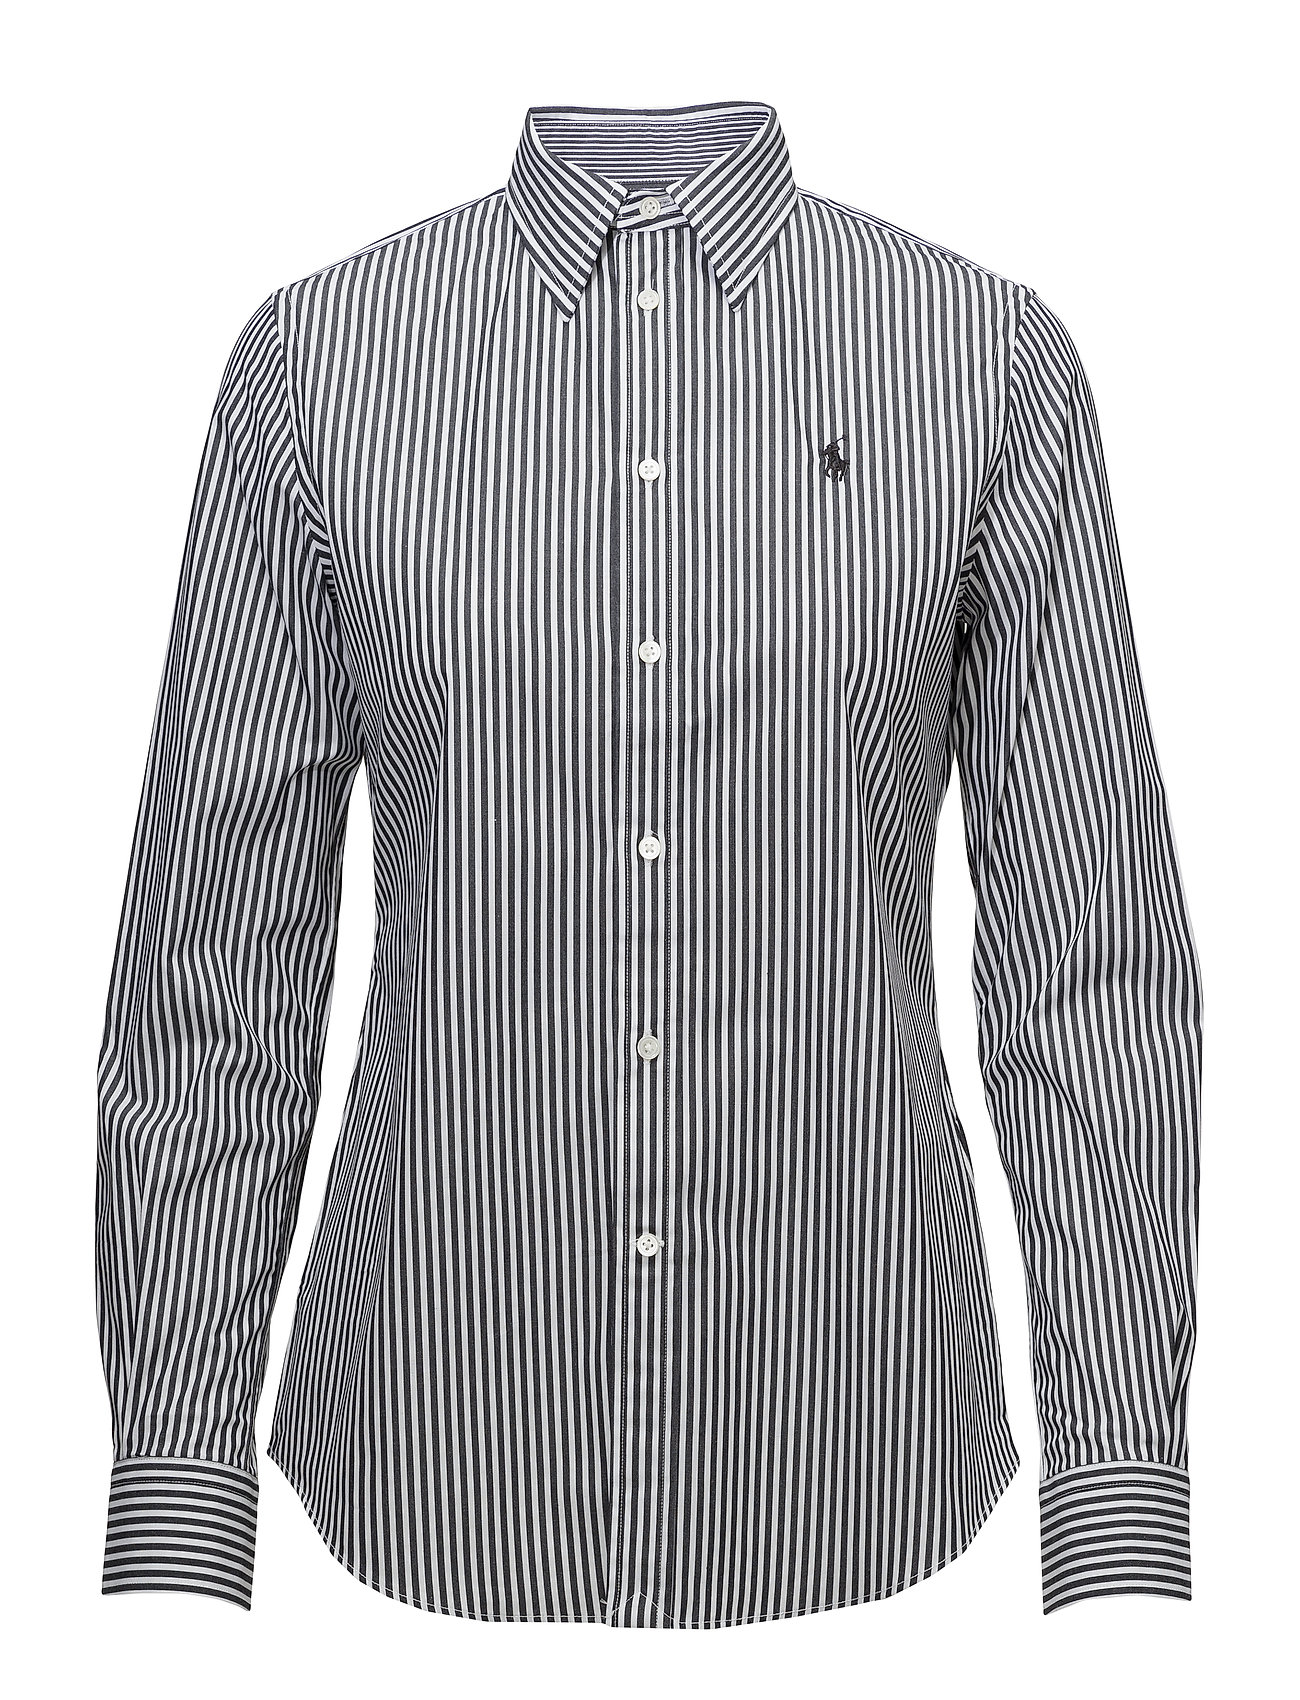 Polo Ralph Lauren Stretch Slim Striped Shirt